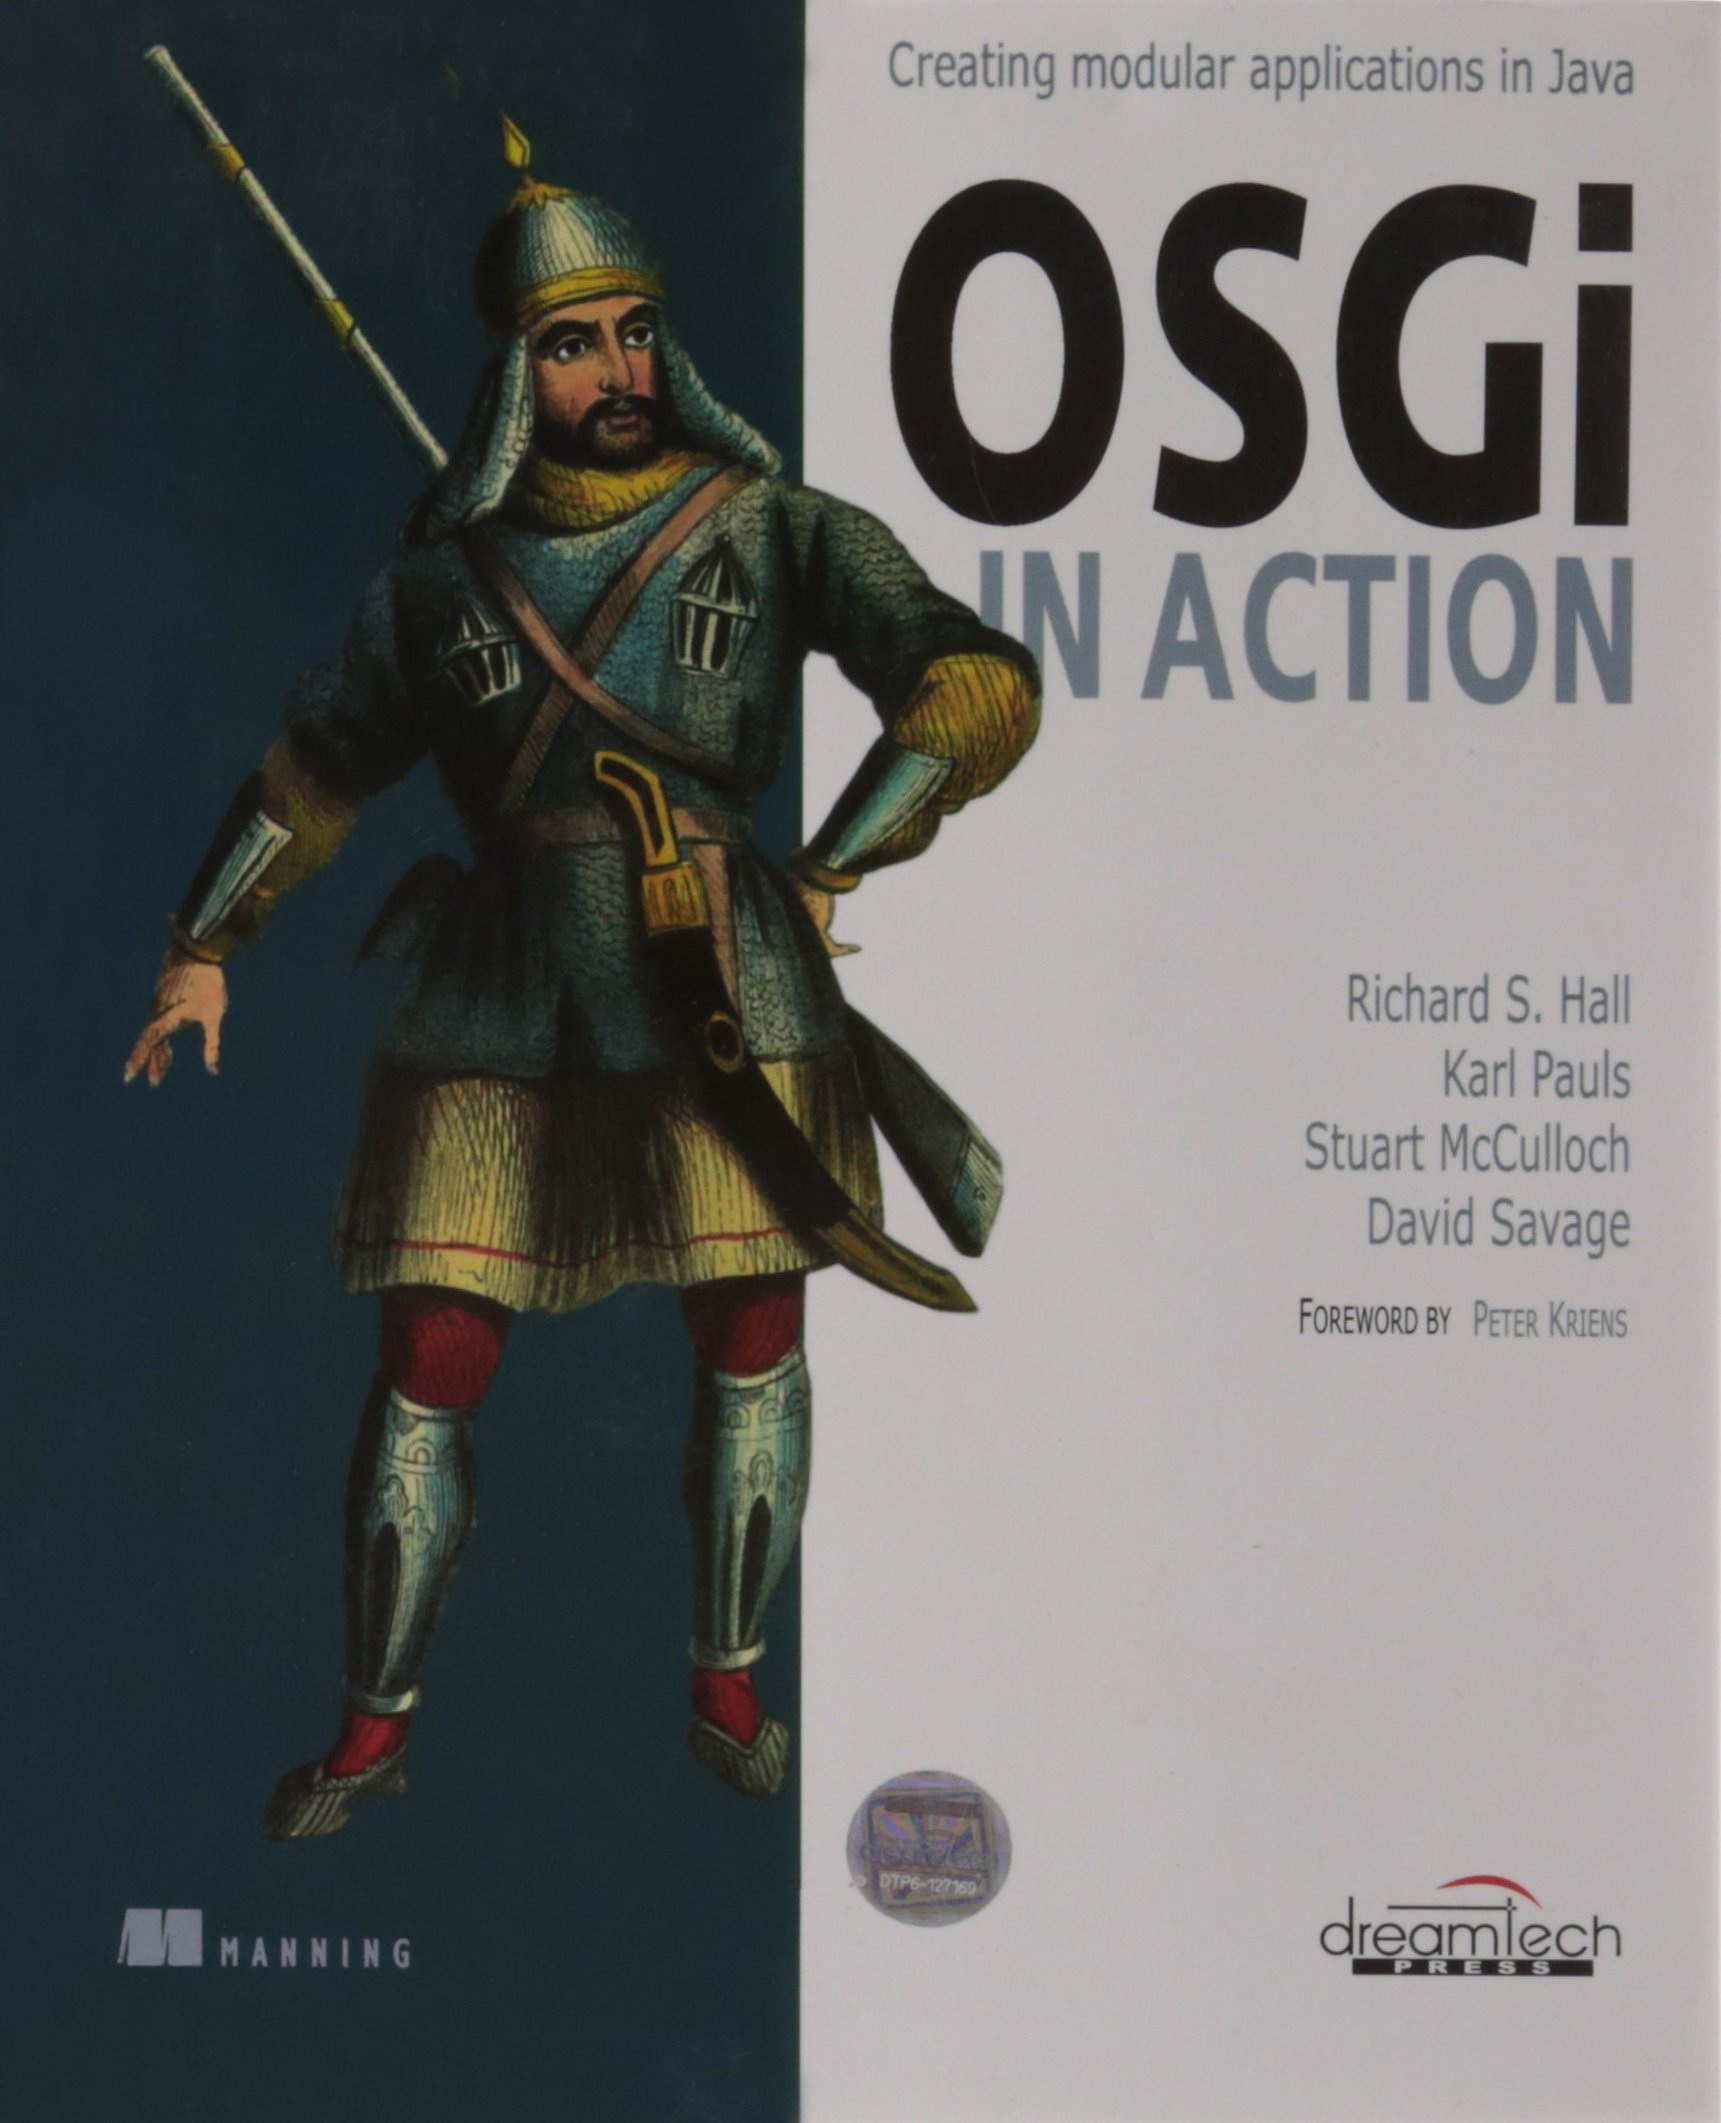 Buy osgi in action creating modular applications in java book buy osgi in action creating modular applications in java book online at low prices in india osgi in action creating modular applications in java reviews malvernweather Image collections